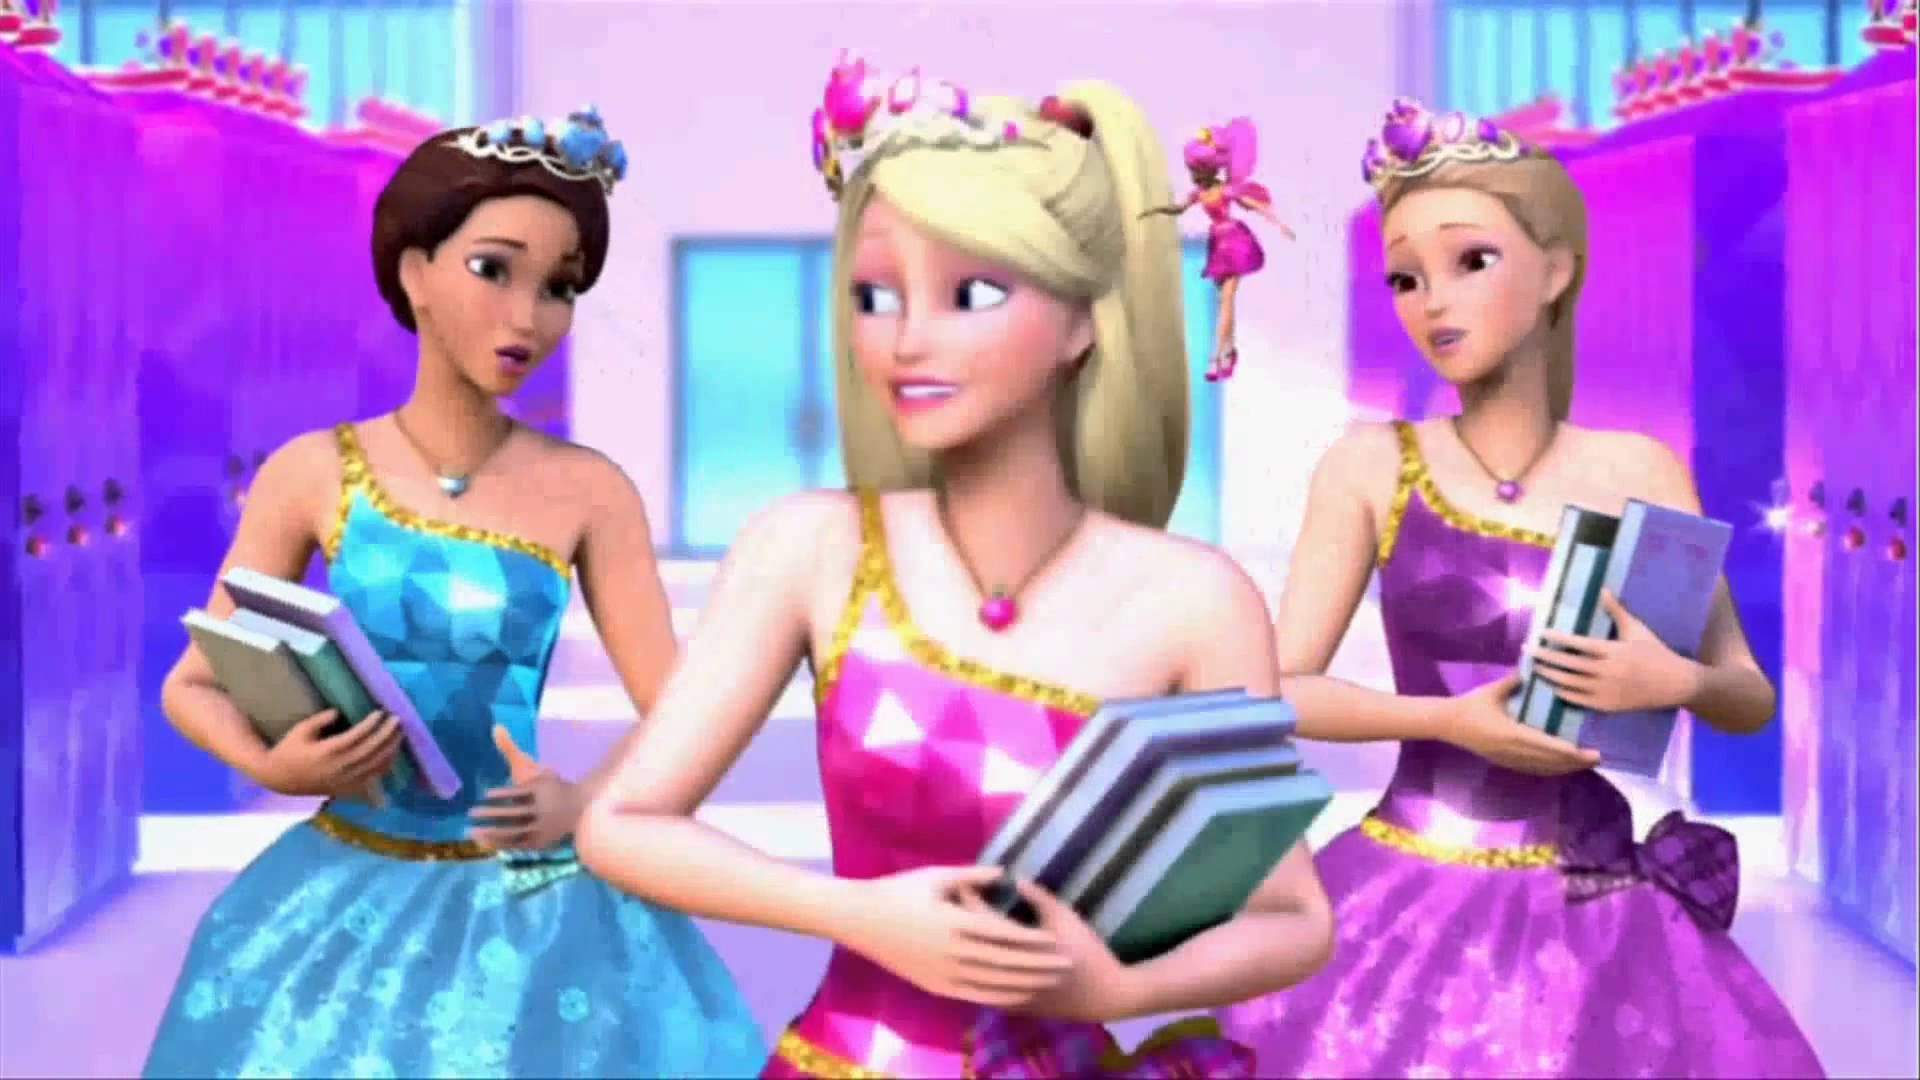 Money Quotes Wallpaper Free Download Download Wallpaper Of Barbie Princess Charm School Gallery